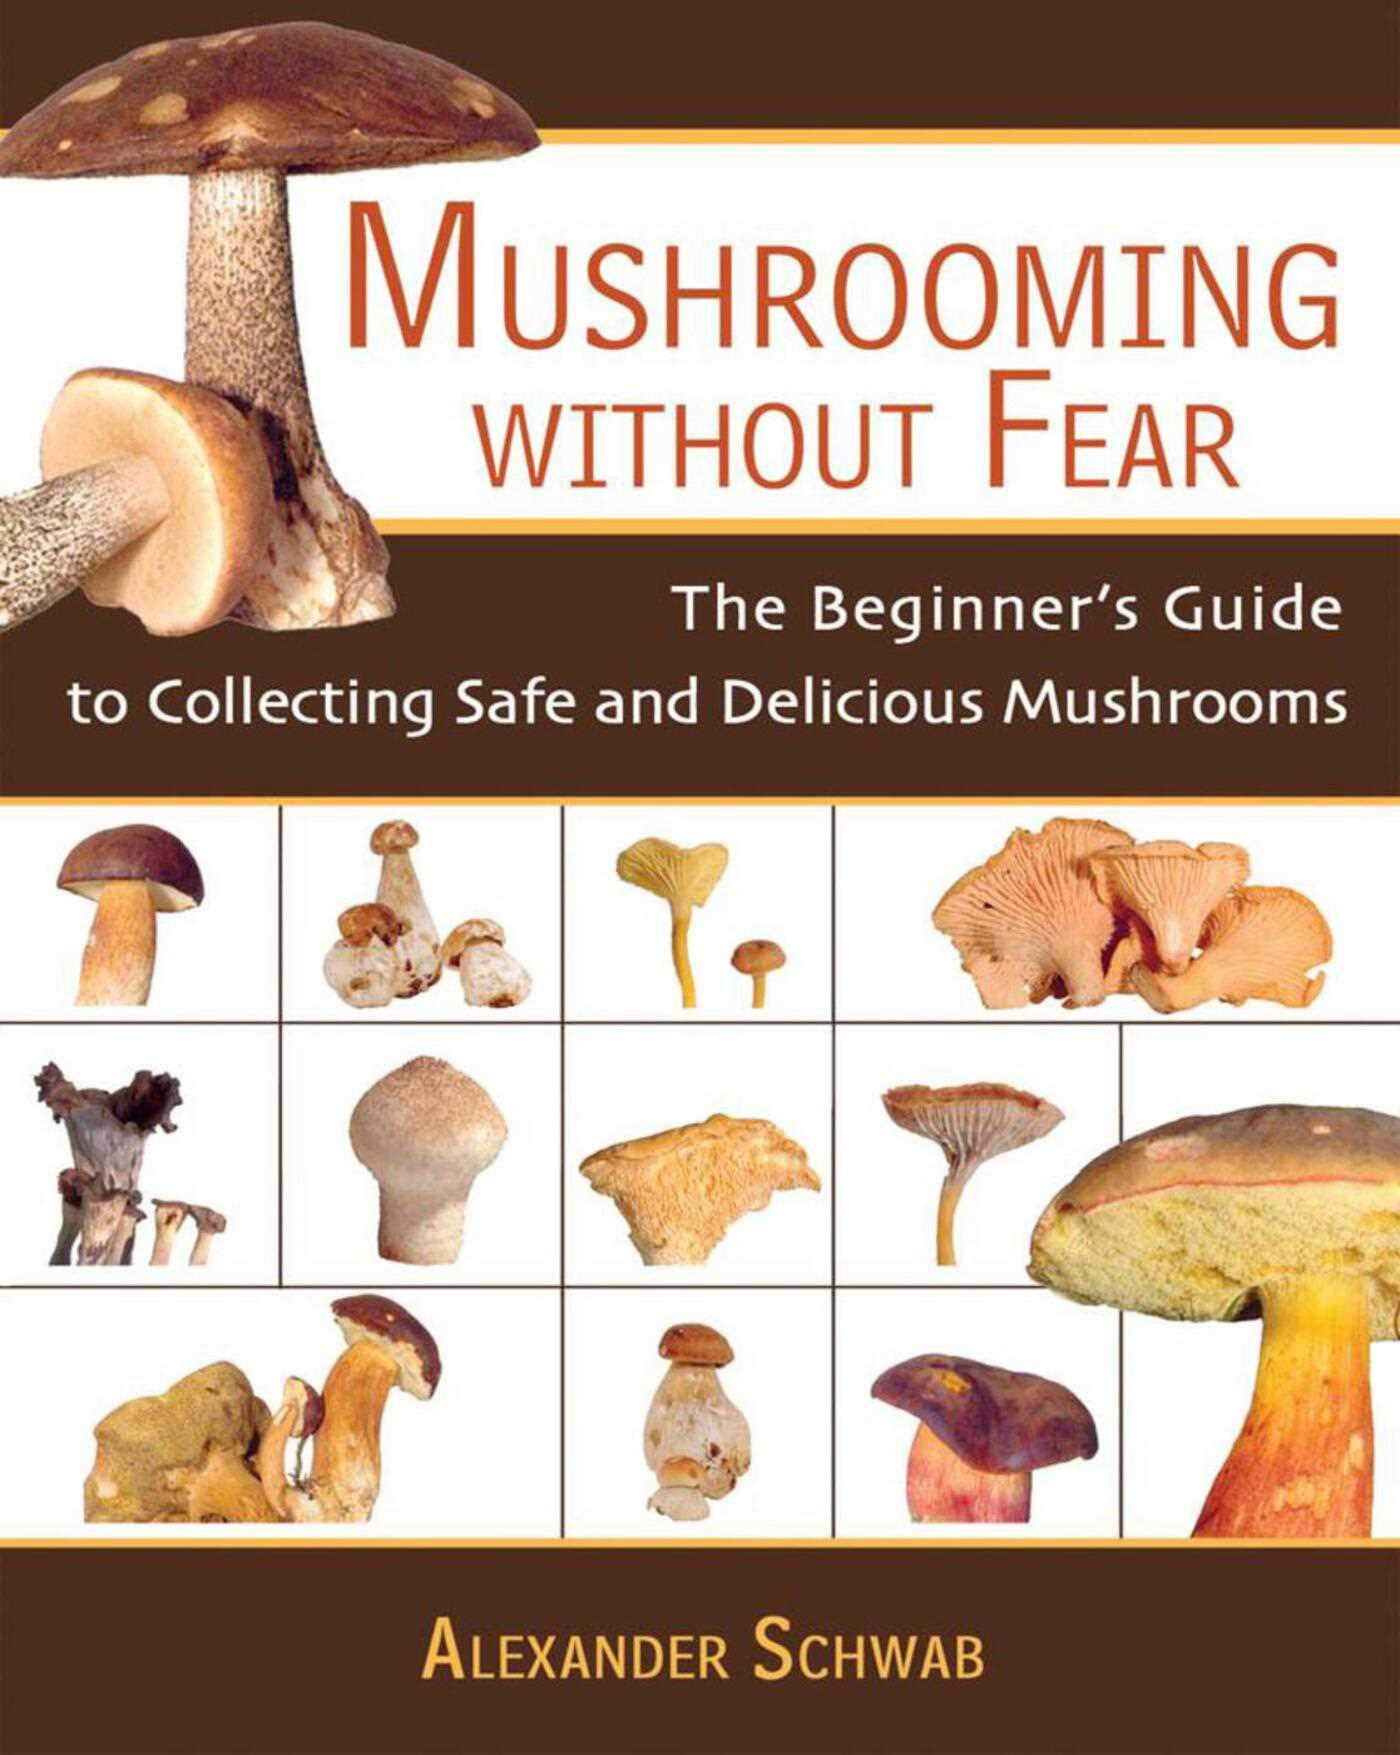 Mushrooming without Fear: The Beginner's Guide to Collecting Safe and Delicious Mushrooms by SKYHORSE